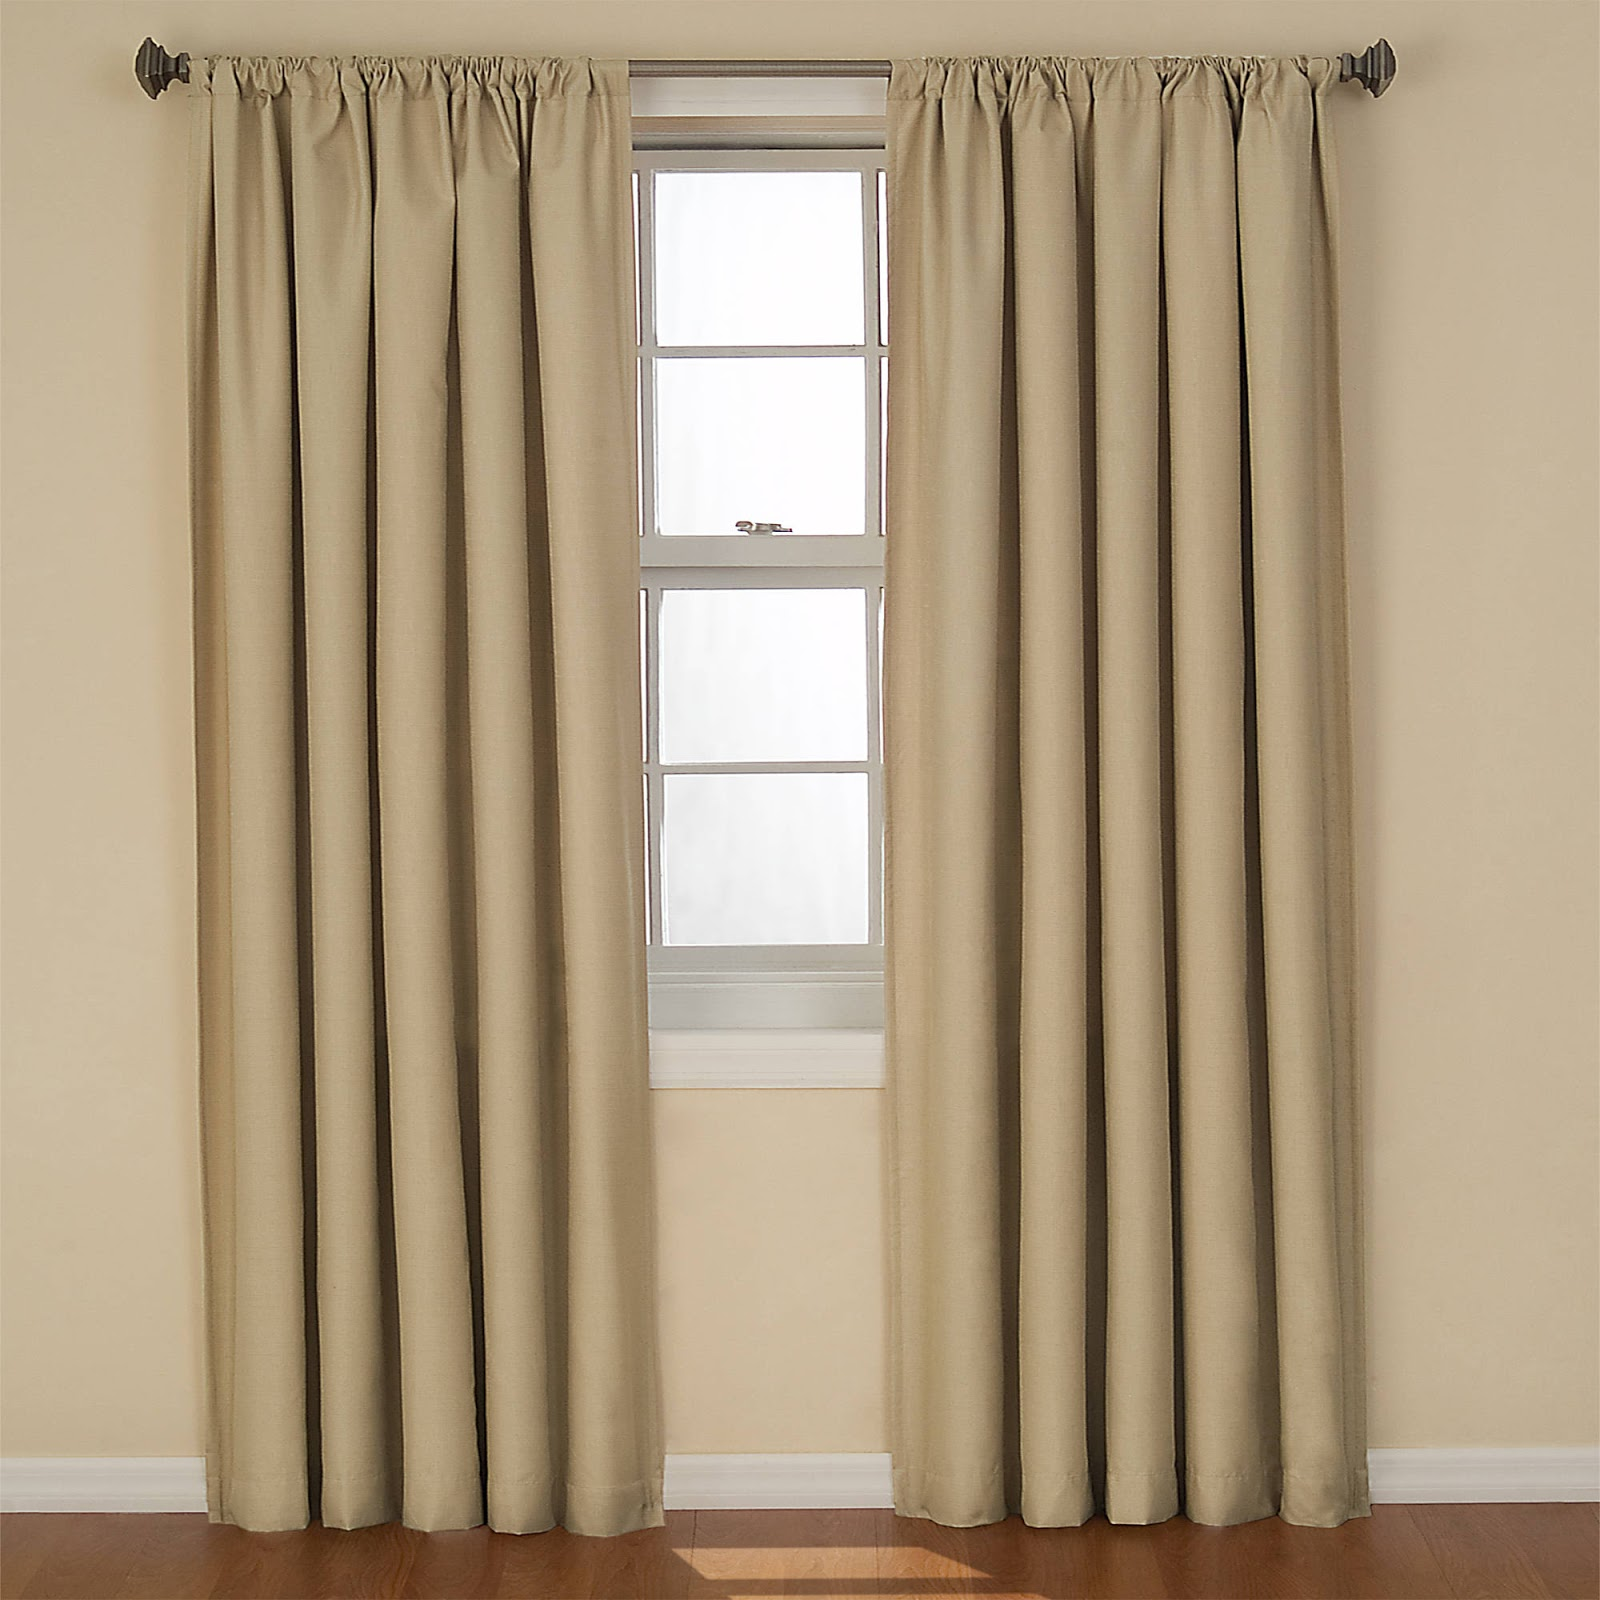 How To Pick Curtains For Bedroom Living Room Pinch Pleat Place Properly Hang